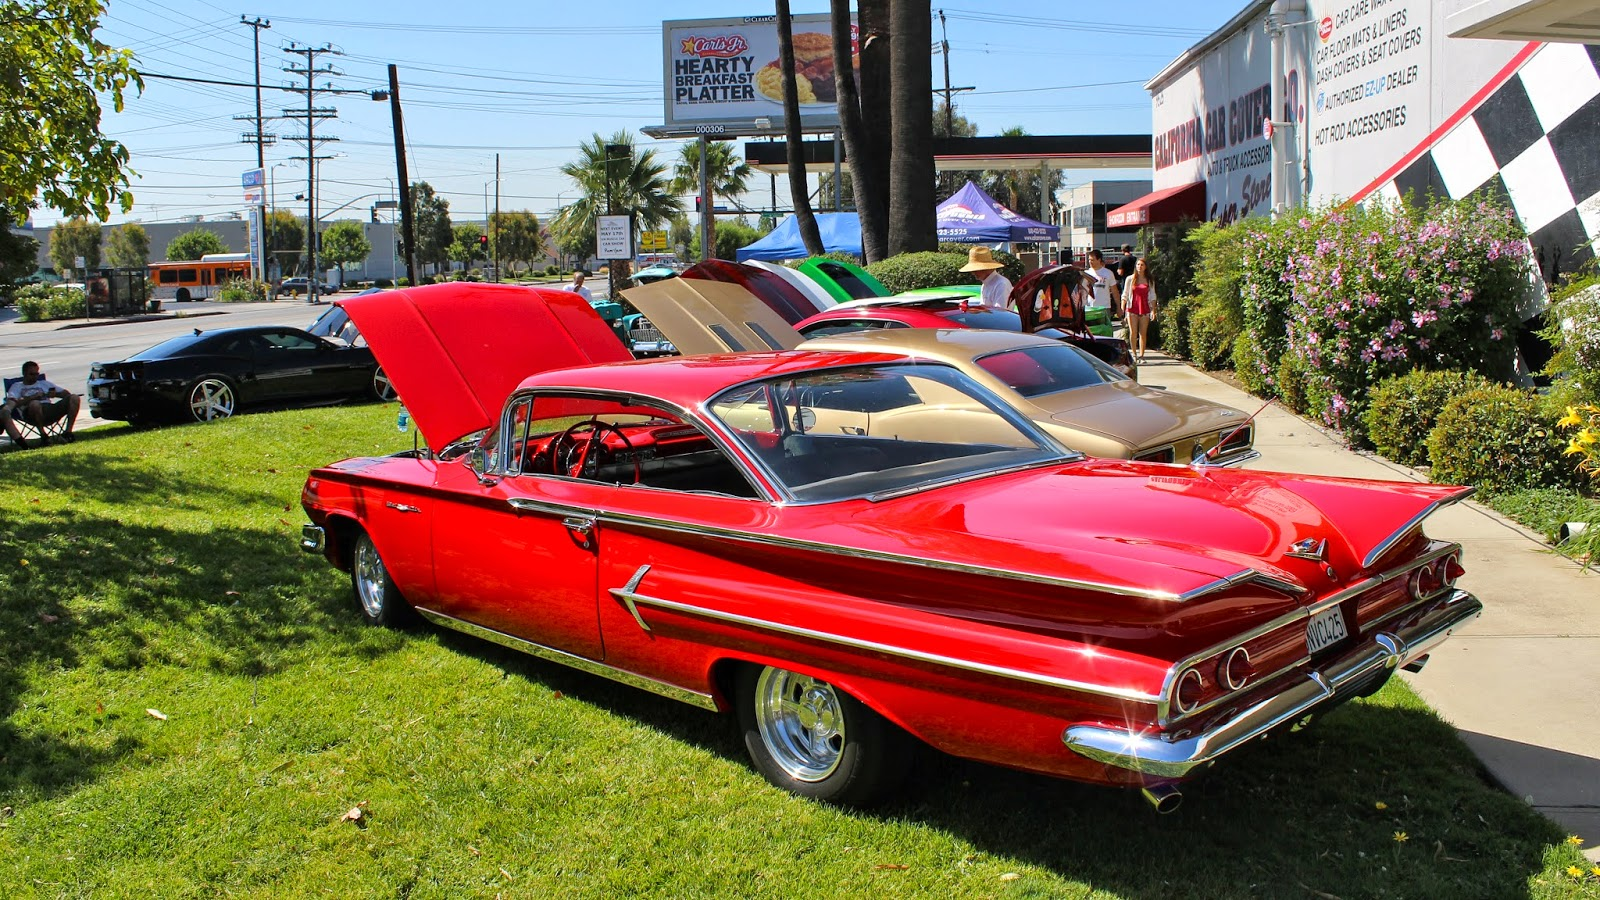 Covering Classic Cars GM Muscle Car Show At California Car Cover - California car shows